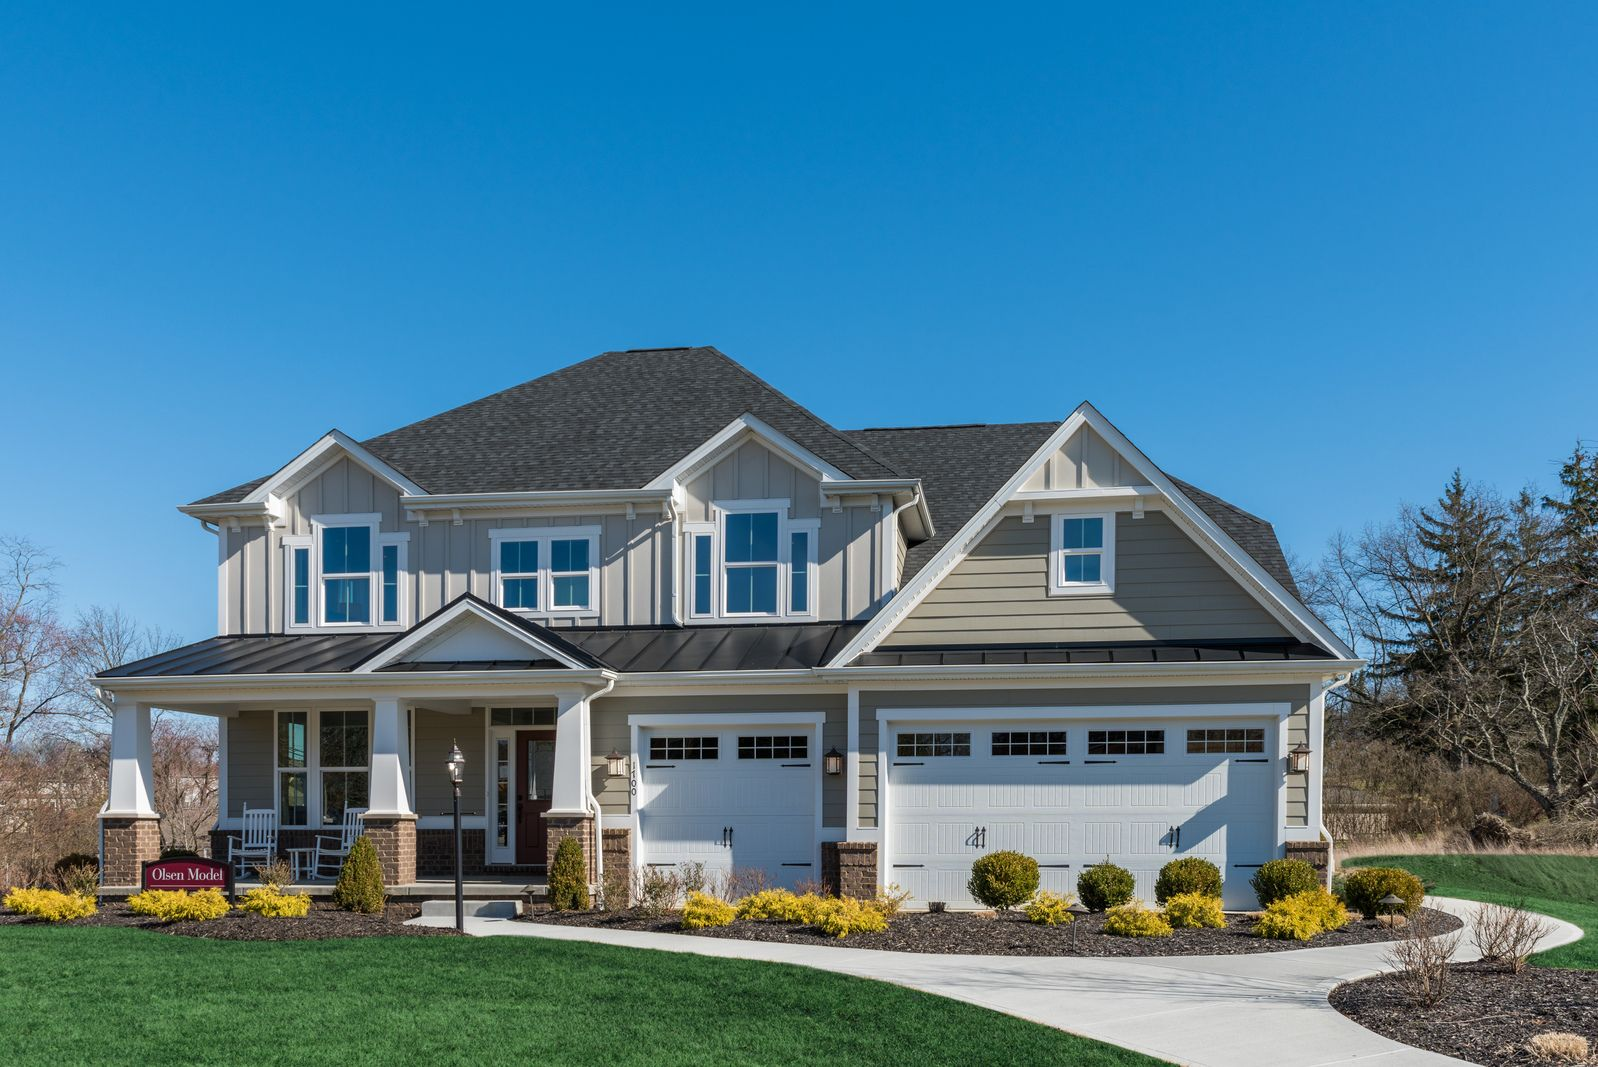 Welcome home to Gabriel's Crest:The best located new community in Adams Township offering stunning views on one cul-de-sac street. From upper $500s.Click here to join the VIP List!